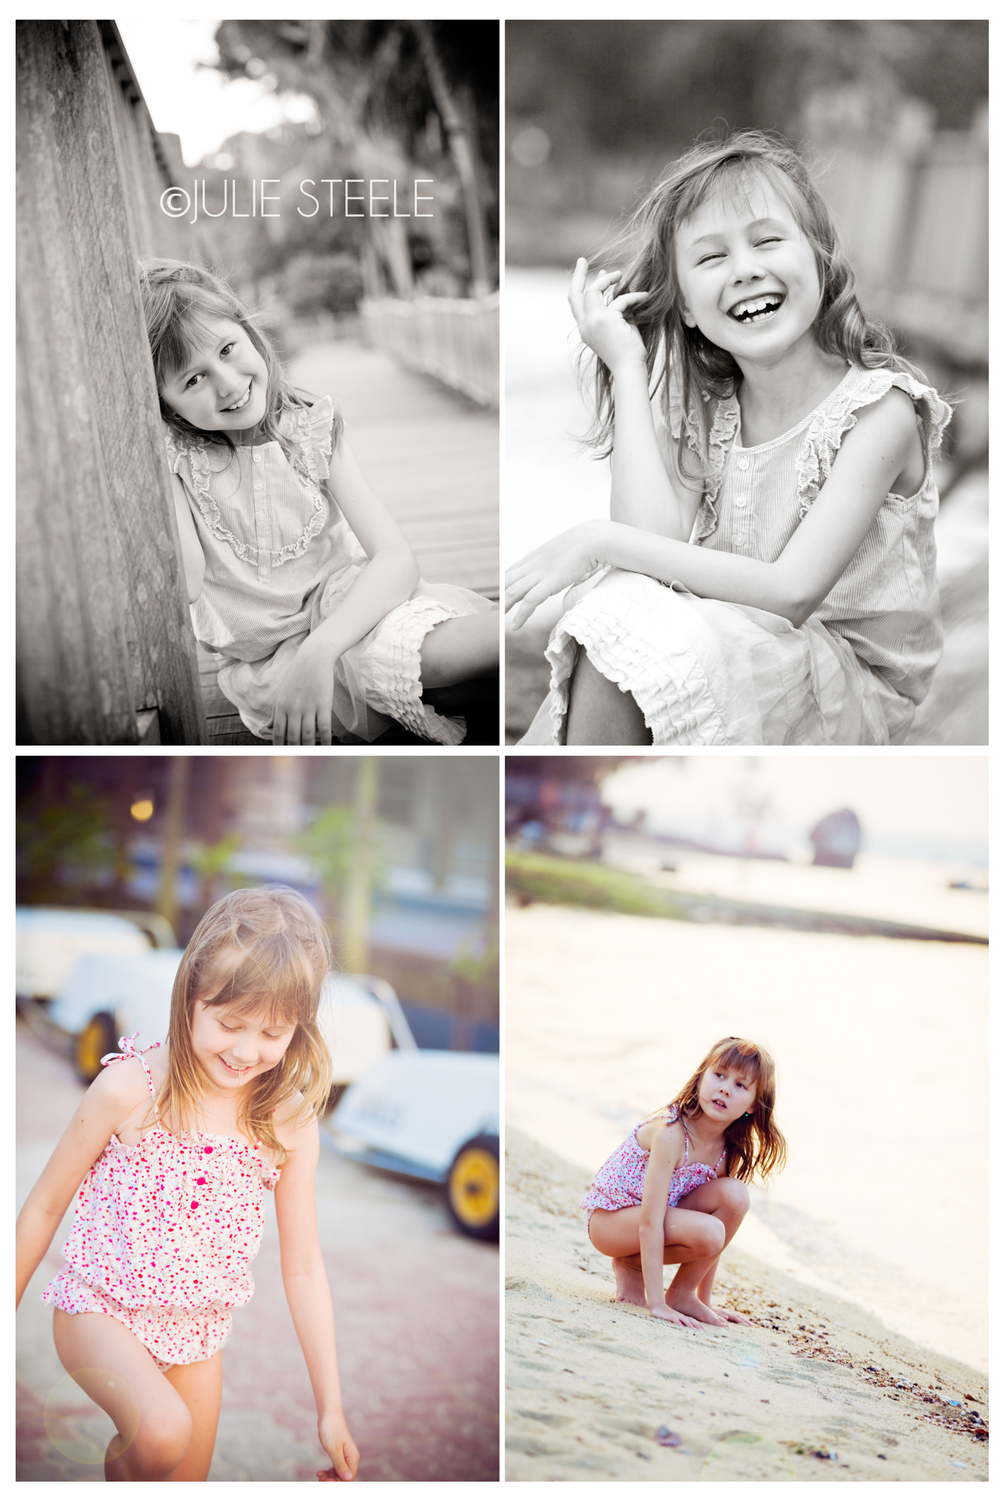 gorgeous young girl portrait